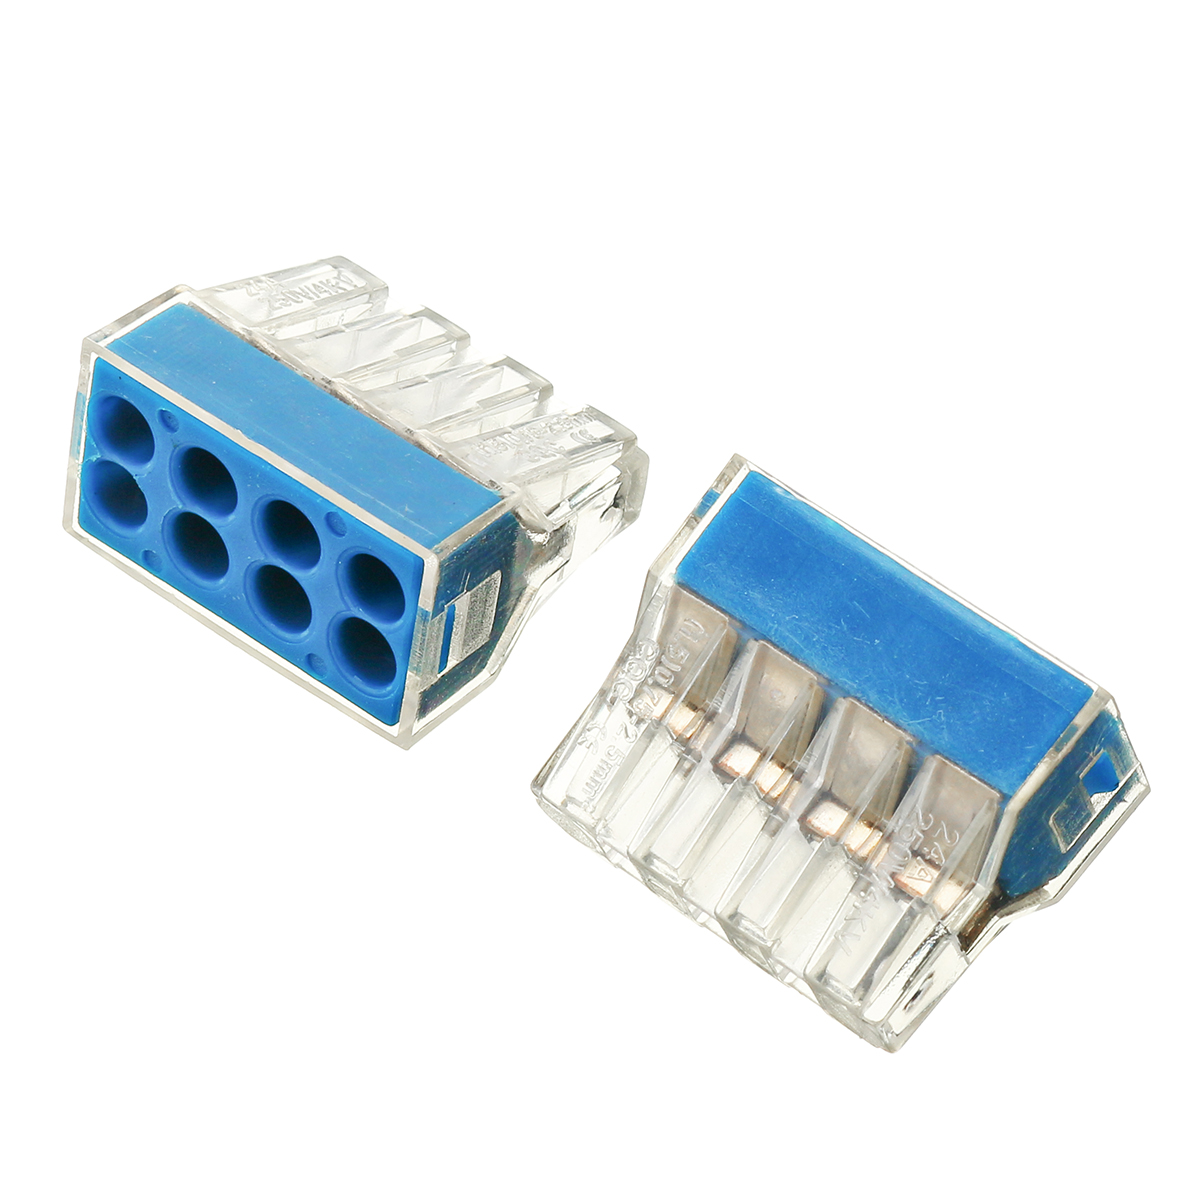 10Pcs 8 Holes Universal Compact Terminal Block Electric Cable Wire Connector